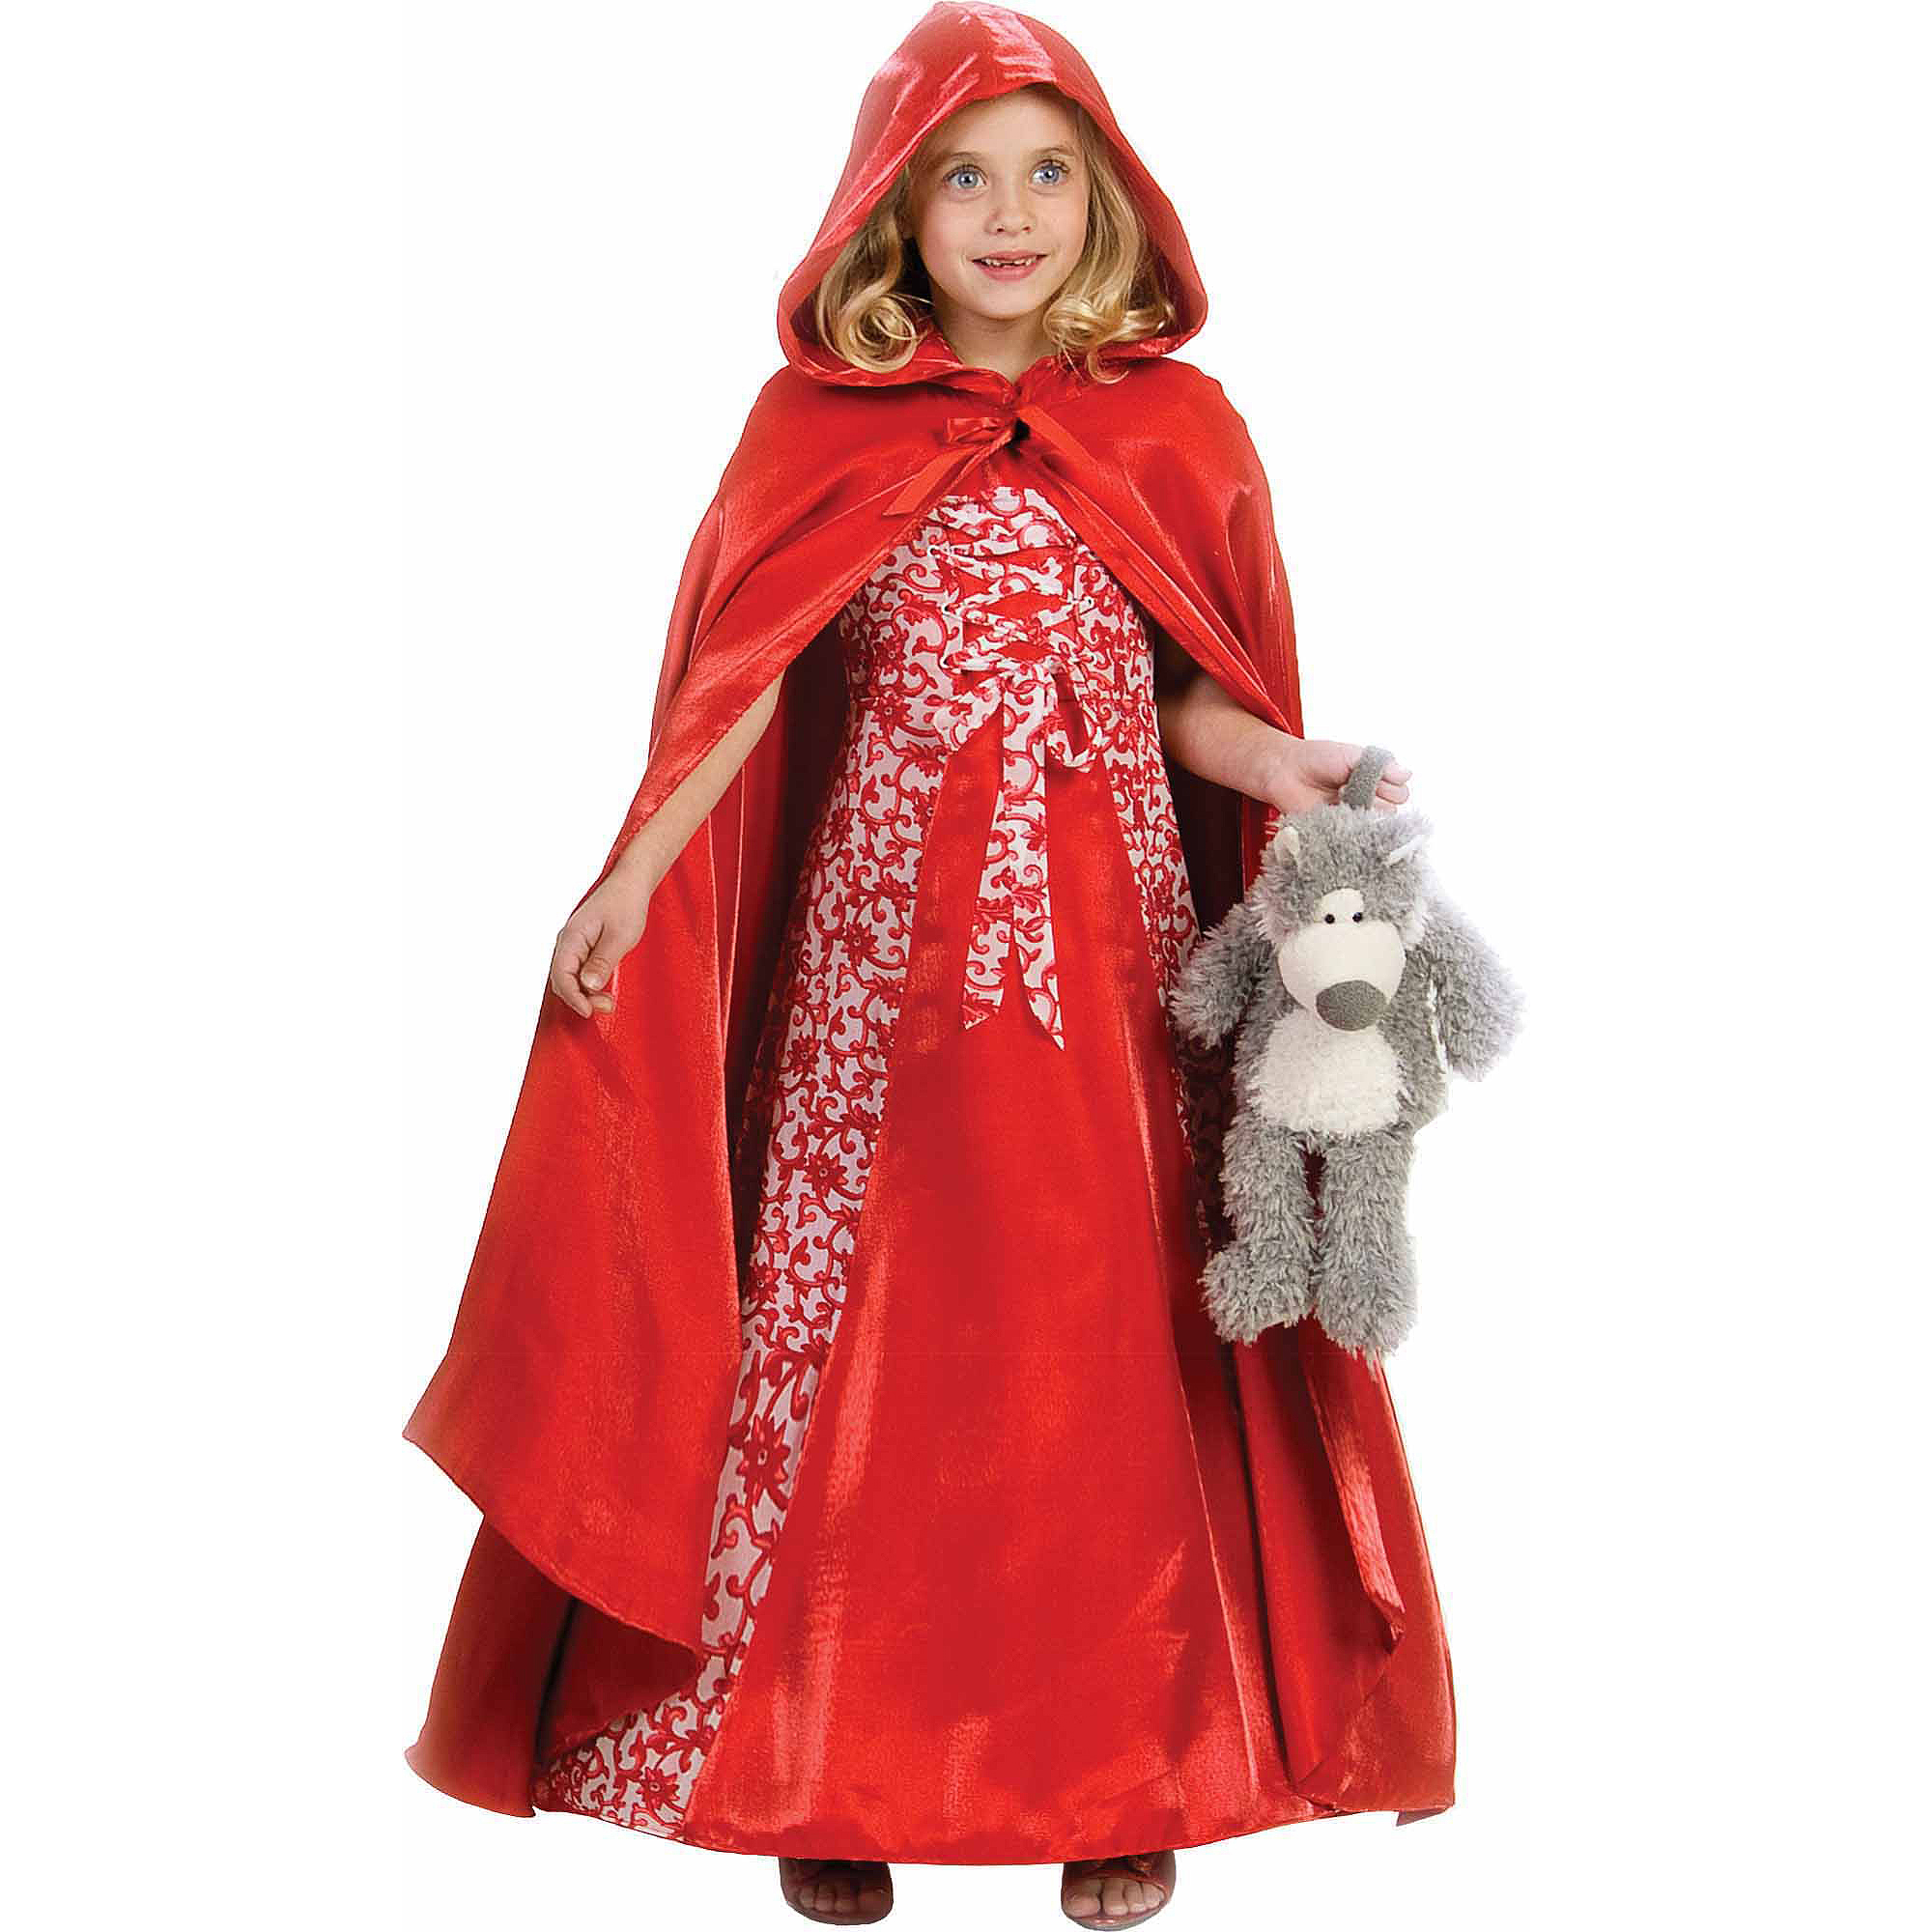 Princess Red Riding Child Halloween Costume